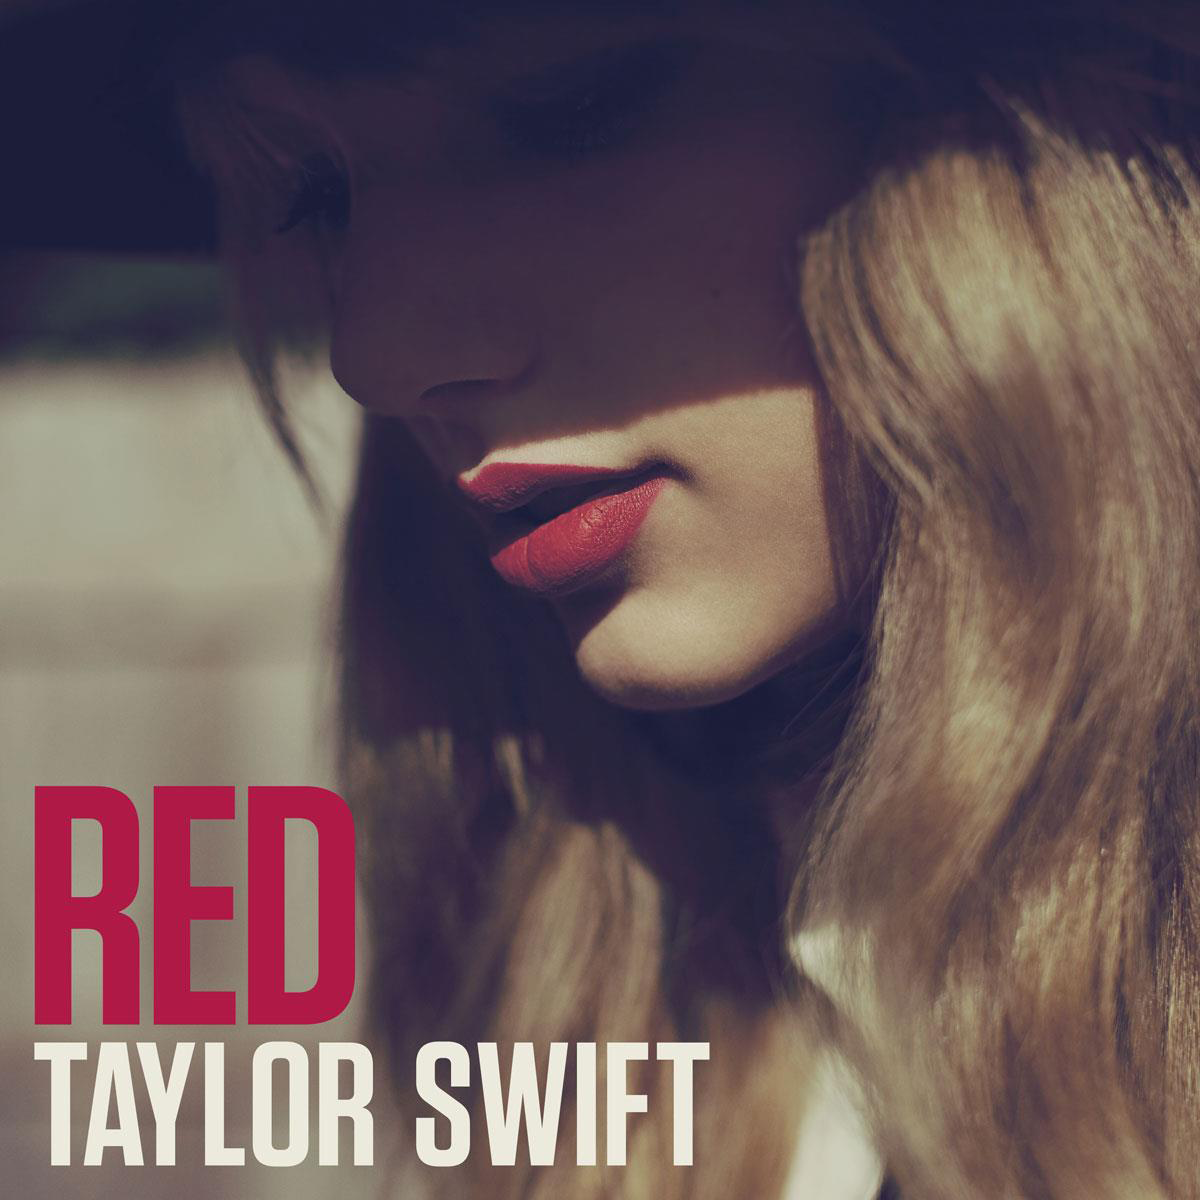 Taylor-Swift-Red-Album-Cover-2012